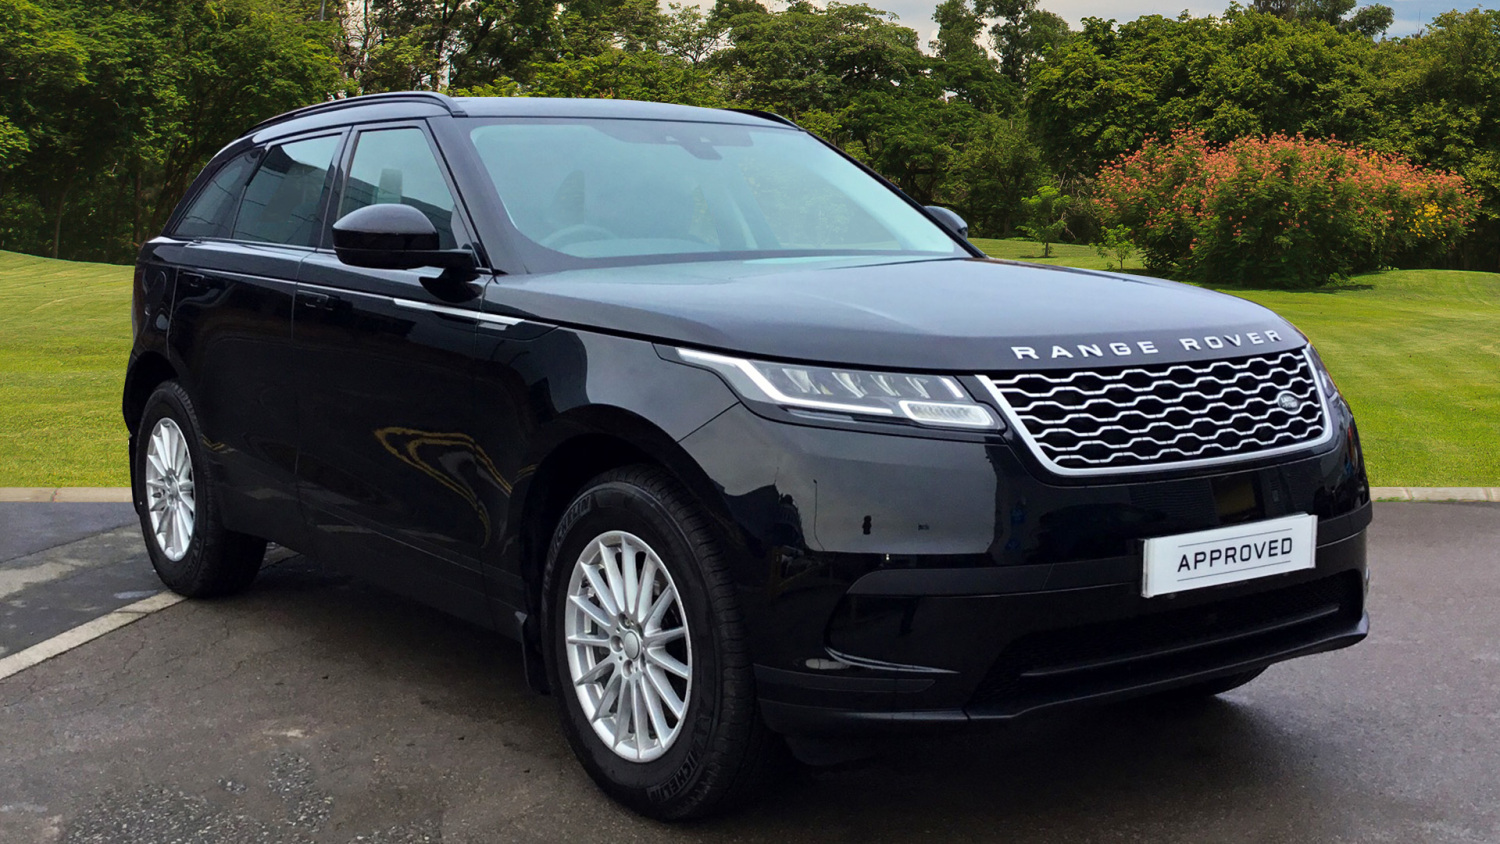 Nelson Auto Finance >> Used Land Rover Range Rover Velar 2.0 D180 5Dr Auto Diesel Estate for Sale | Farnell Land Rover